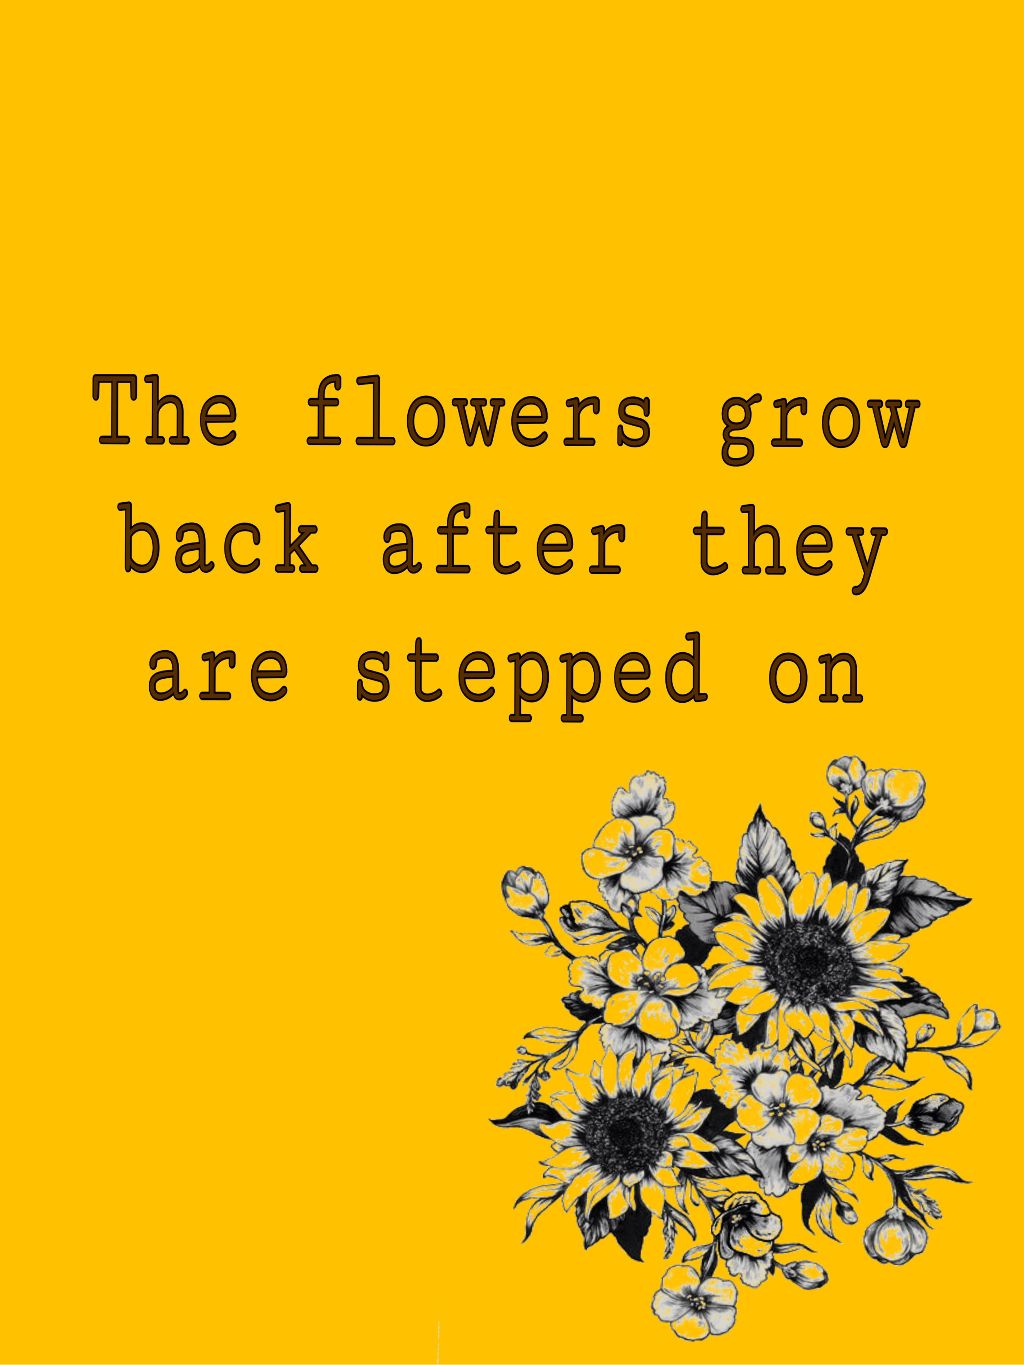 Freetoedit Aesthetic Yellow Flower Quotes